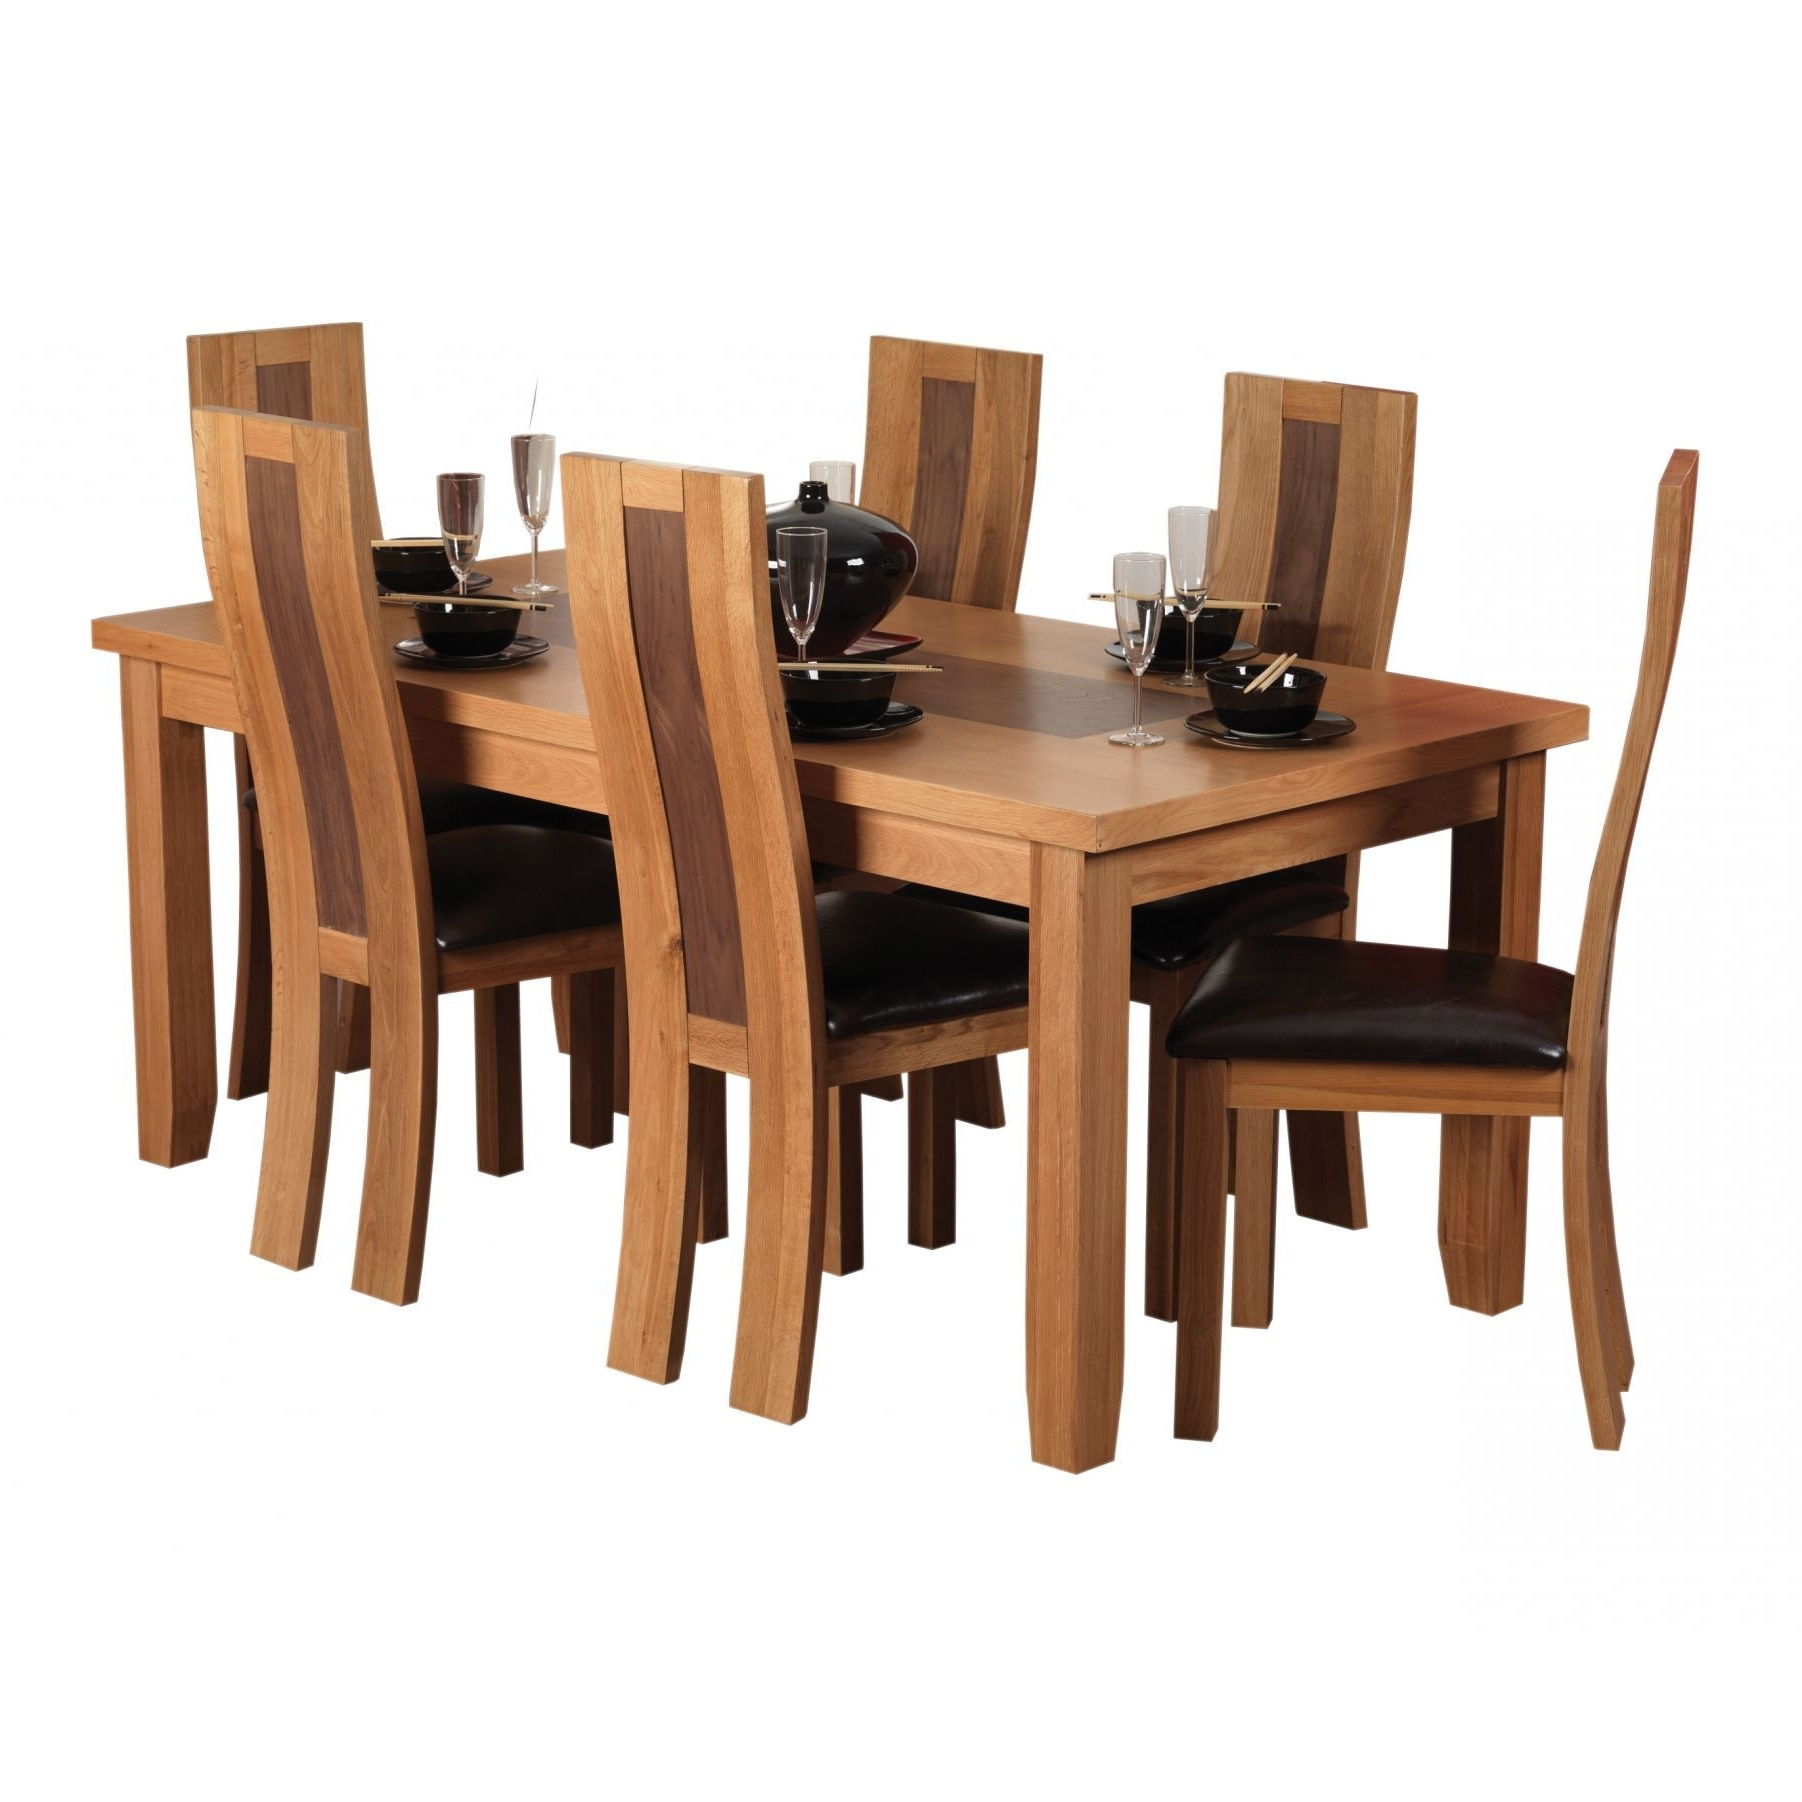 Astounding Furniture Dining Table Toscana Dining Furniture Regarding Current Toscana Dining Tables (Gallery 18 of 25)